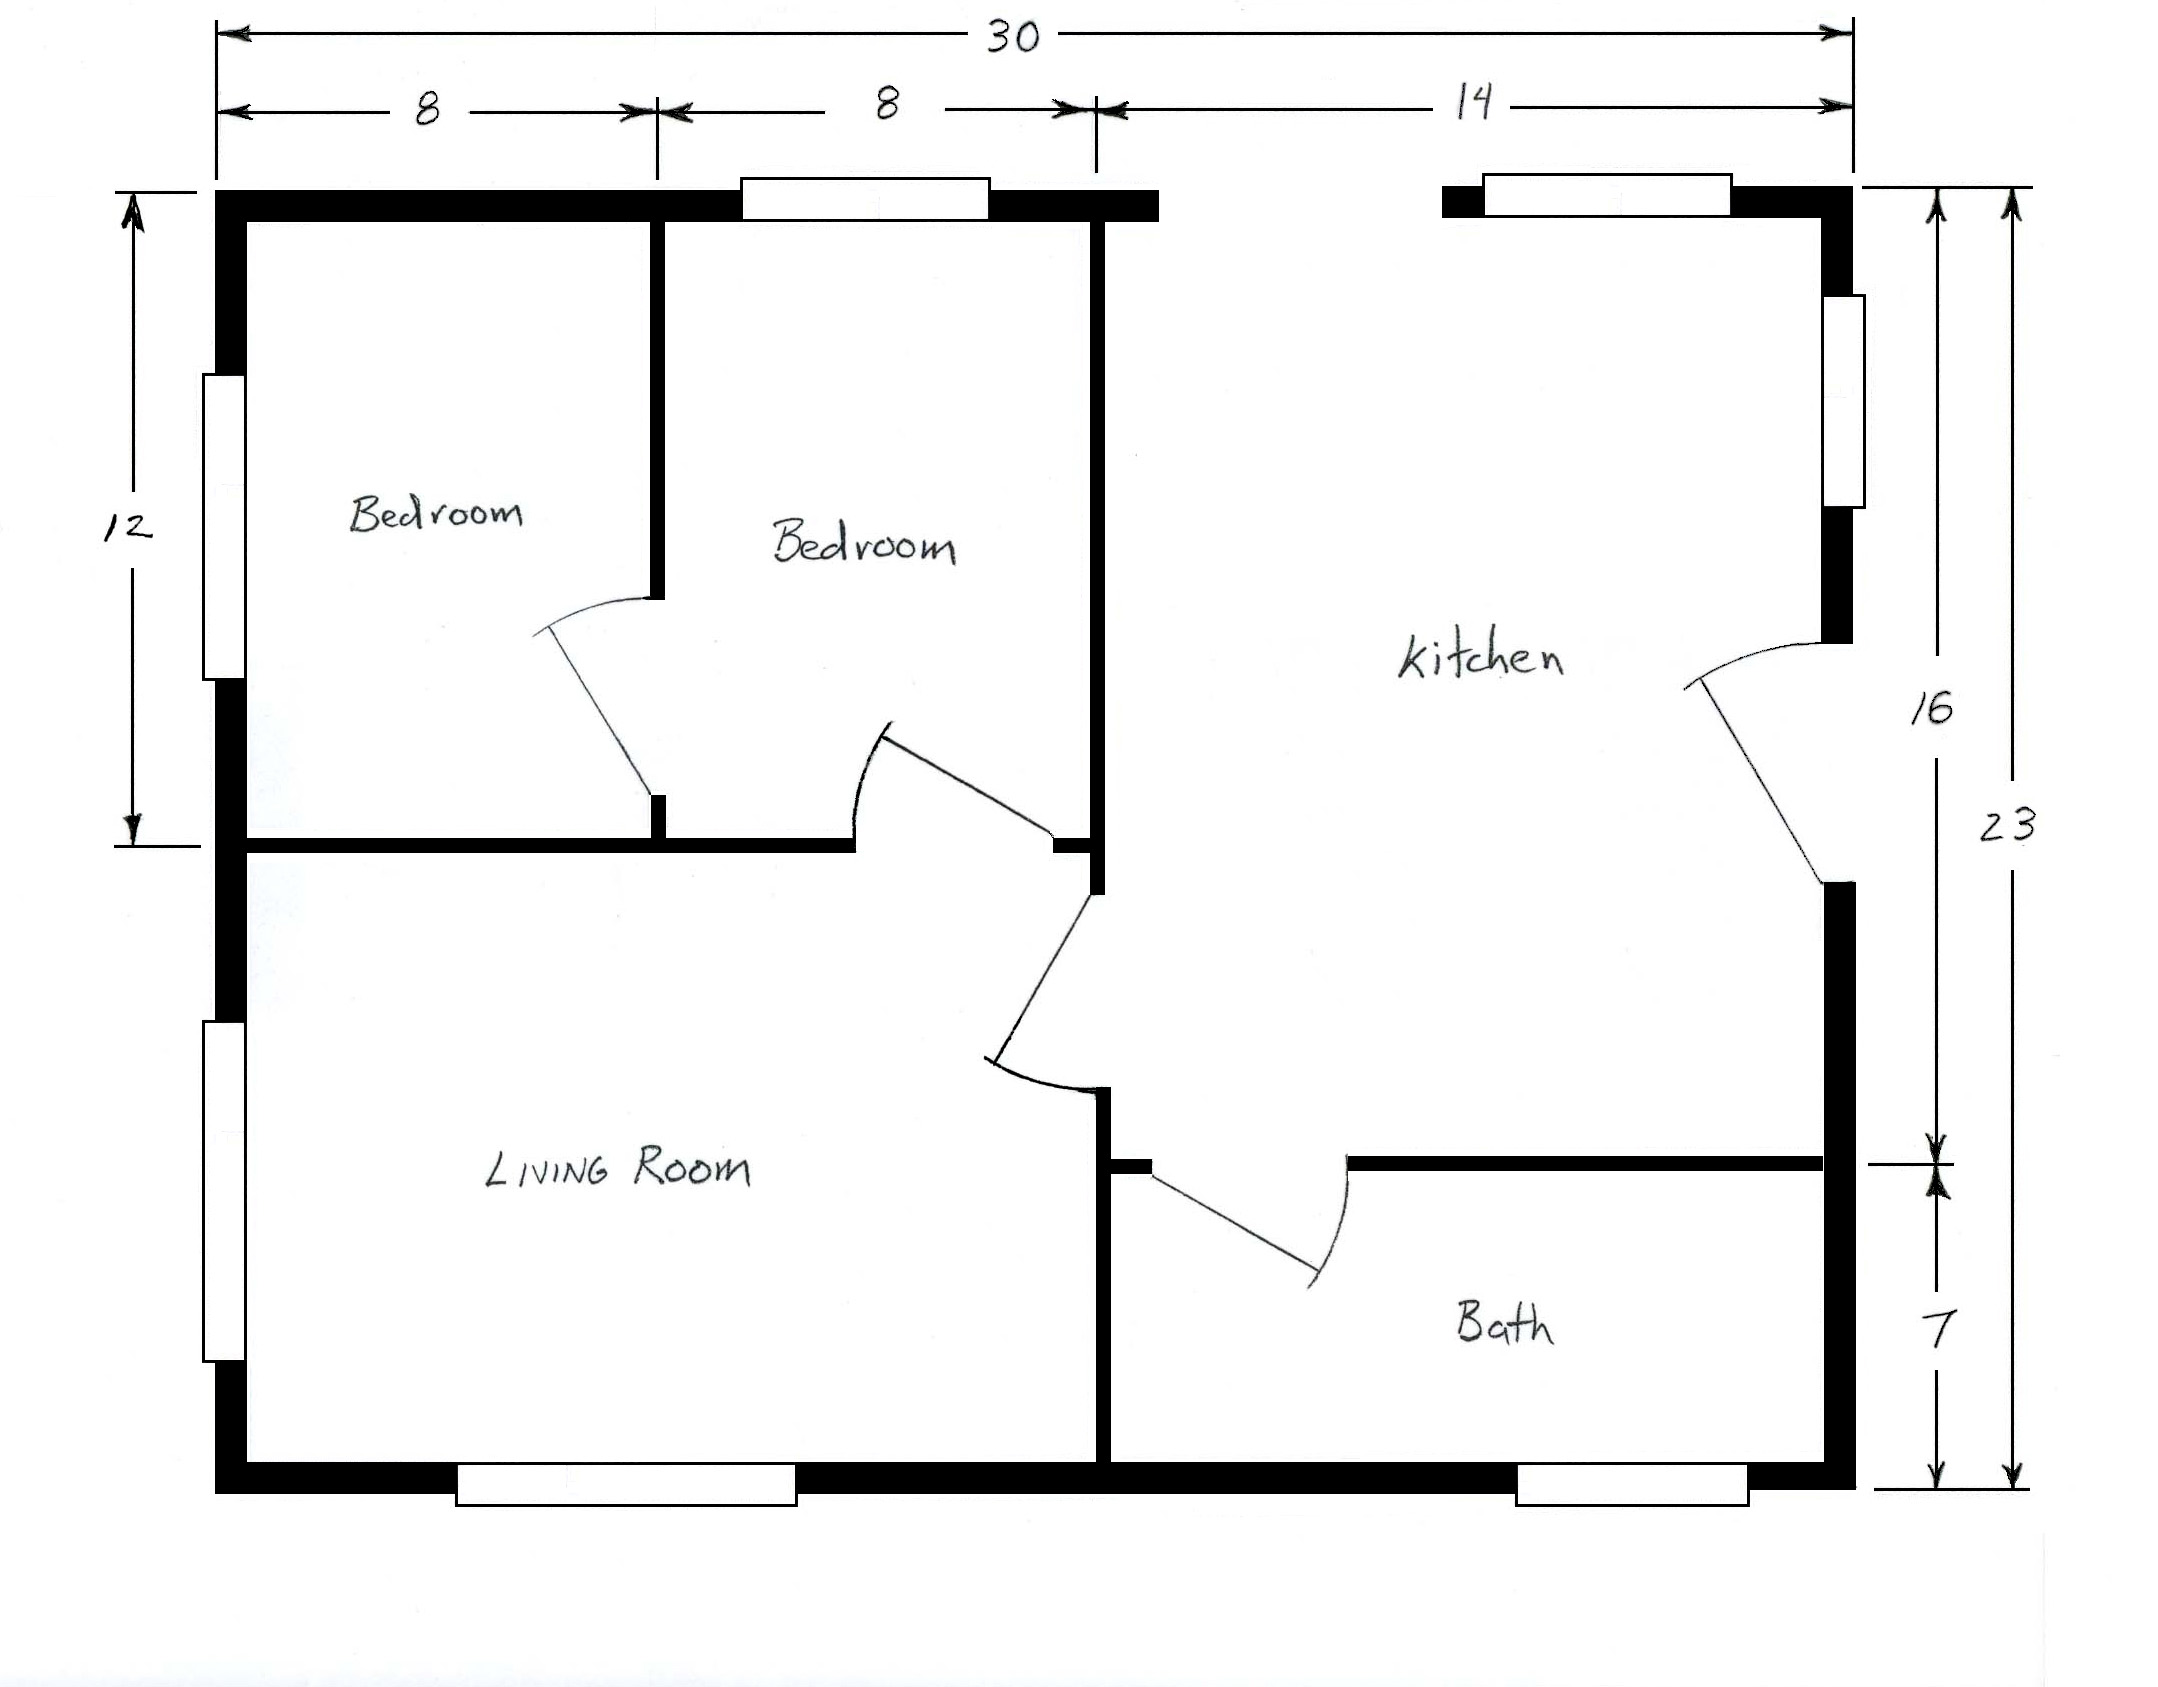 Sample building floor plans floor plans for Office floor plan samples